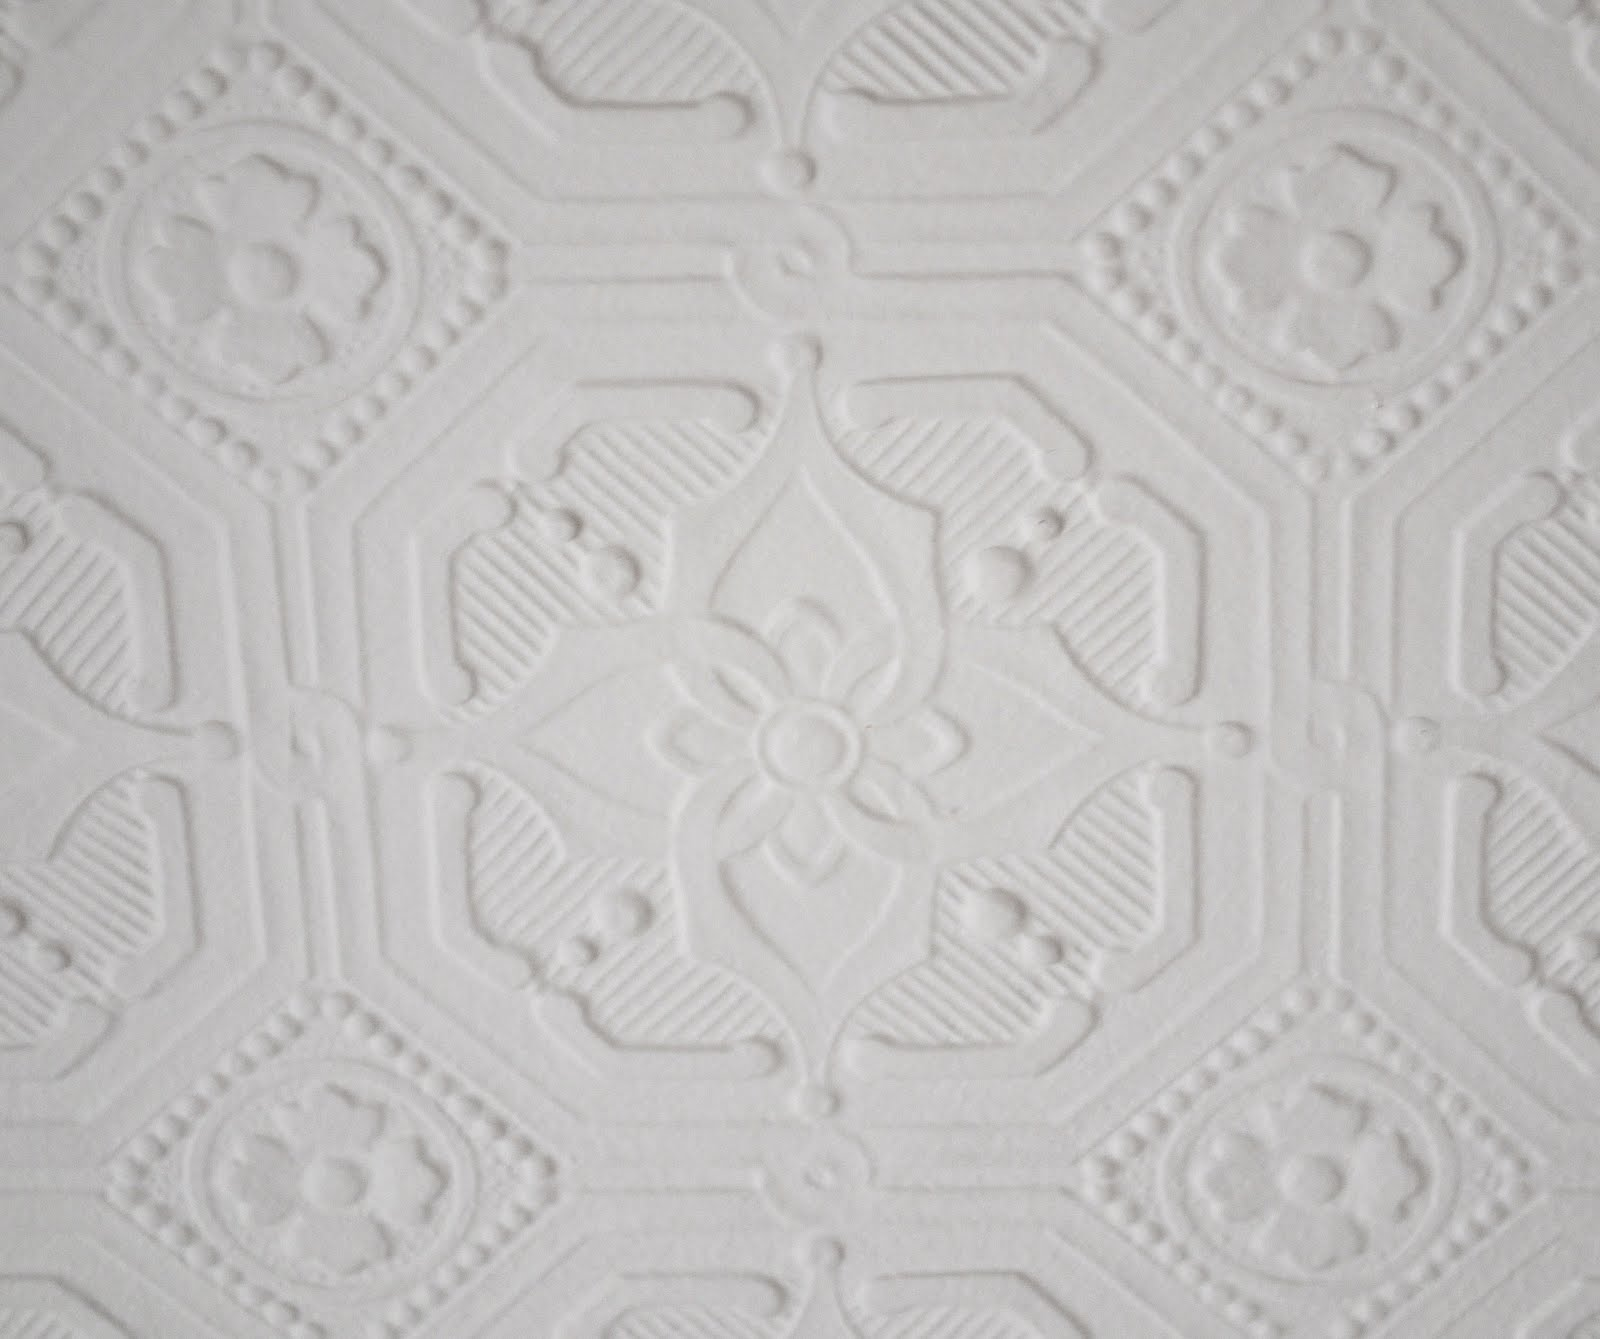 Textured wallpaper for ceilings - Textured wallpaper on ceiling ...